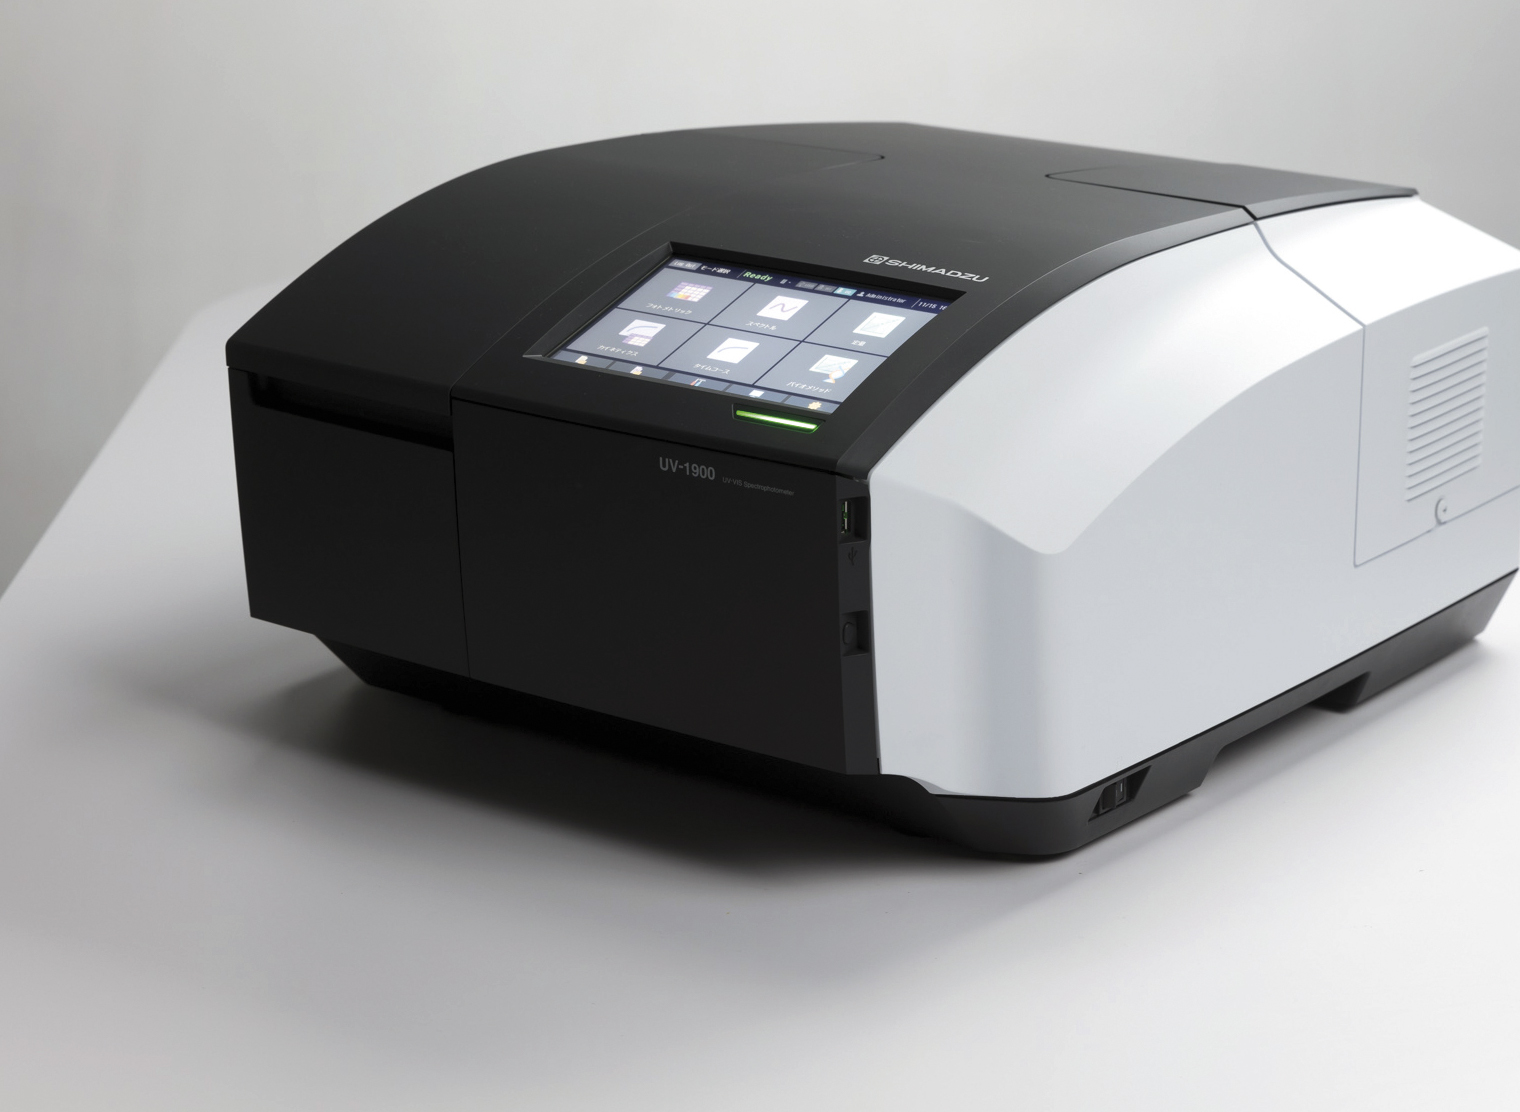 Shimadzu spectrophotometer clipart picture free New UV-1900 UV-Vis Spectrophotometer | SHIMADZU EUROPA picture free